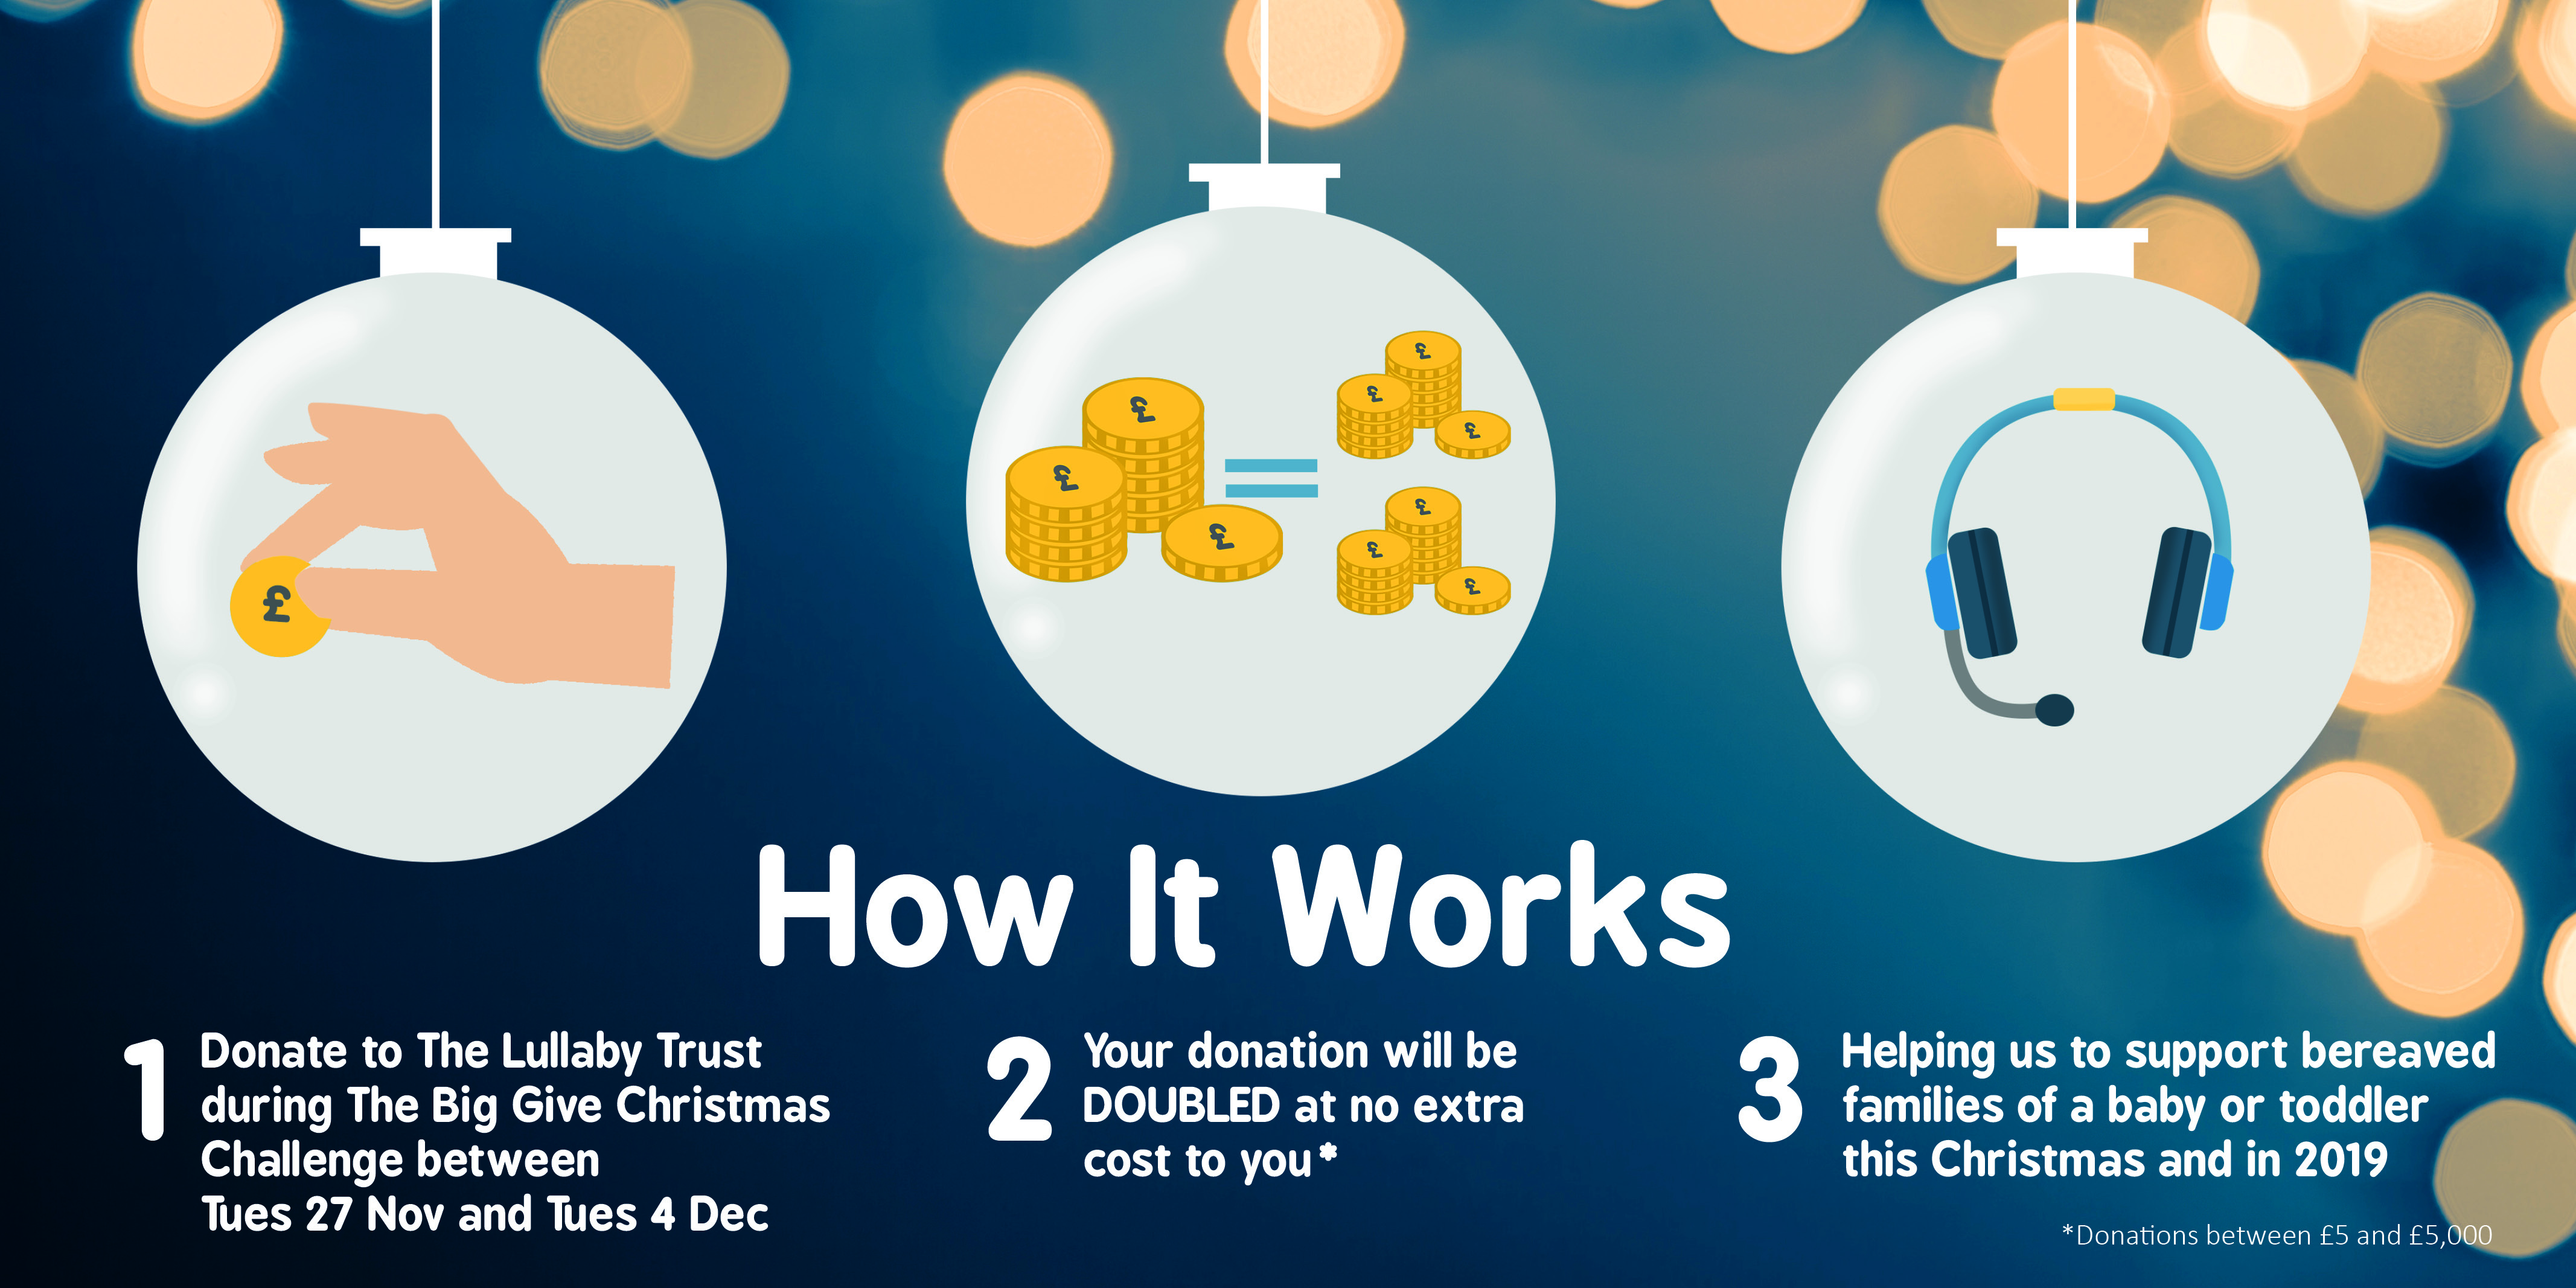 The Big Give Christmas Challenge